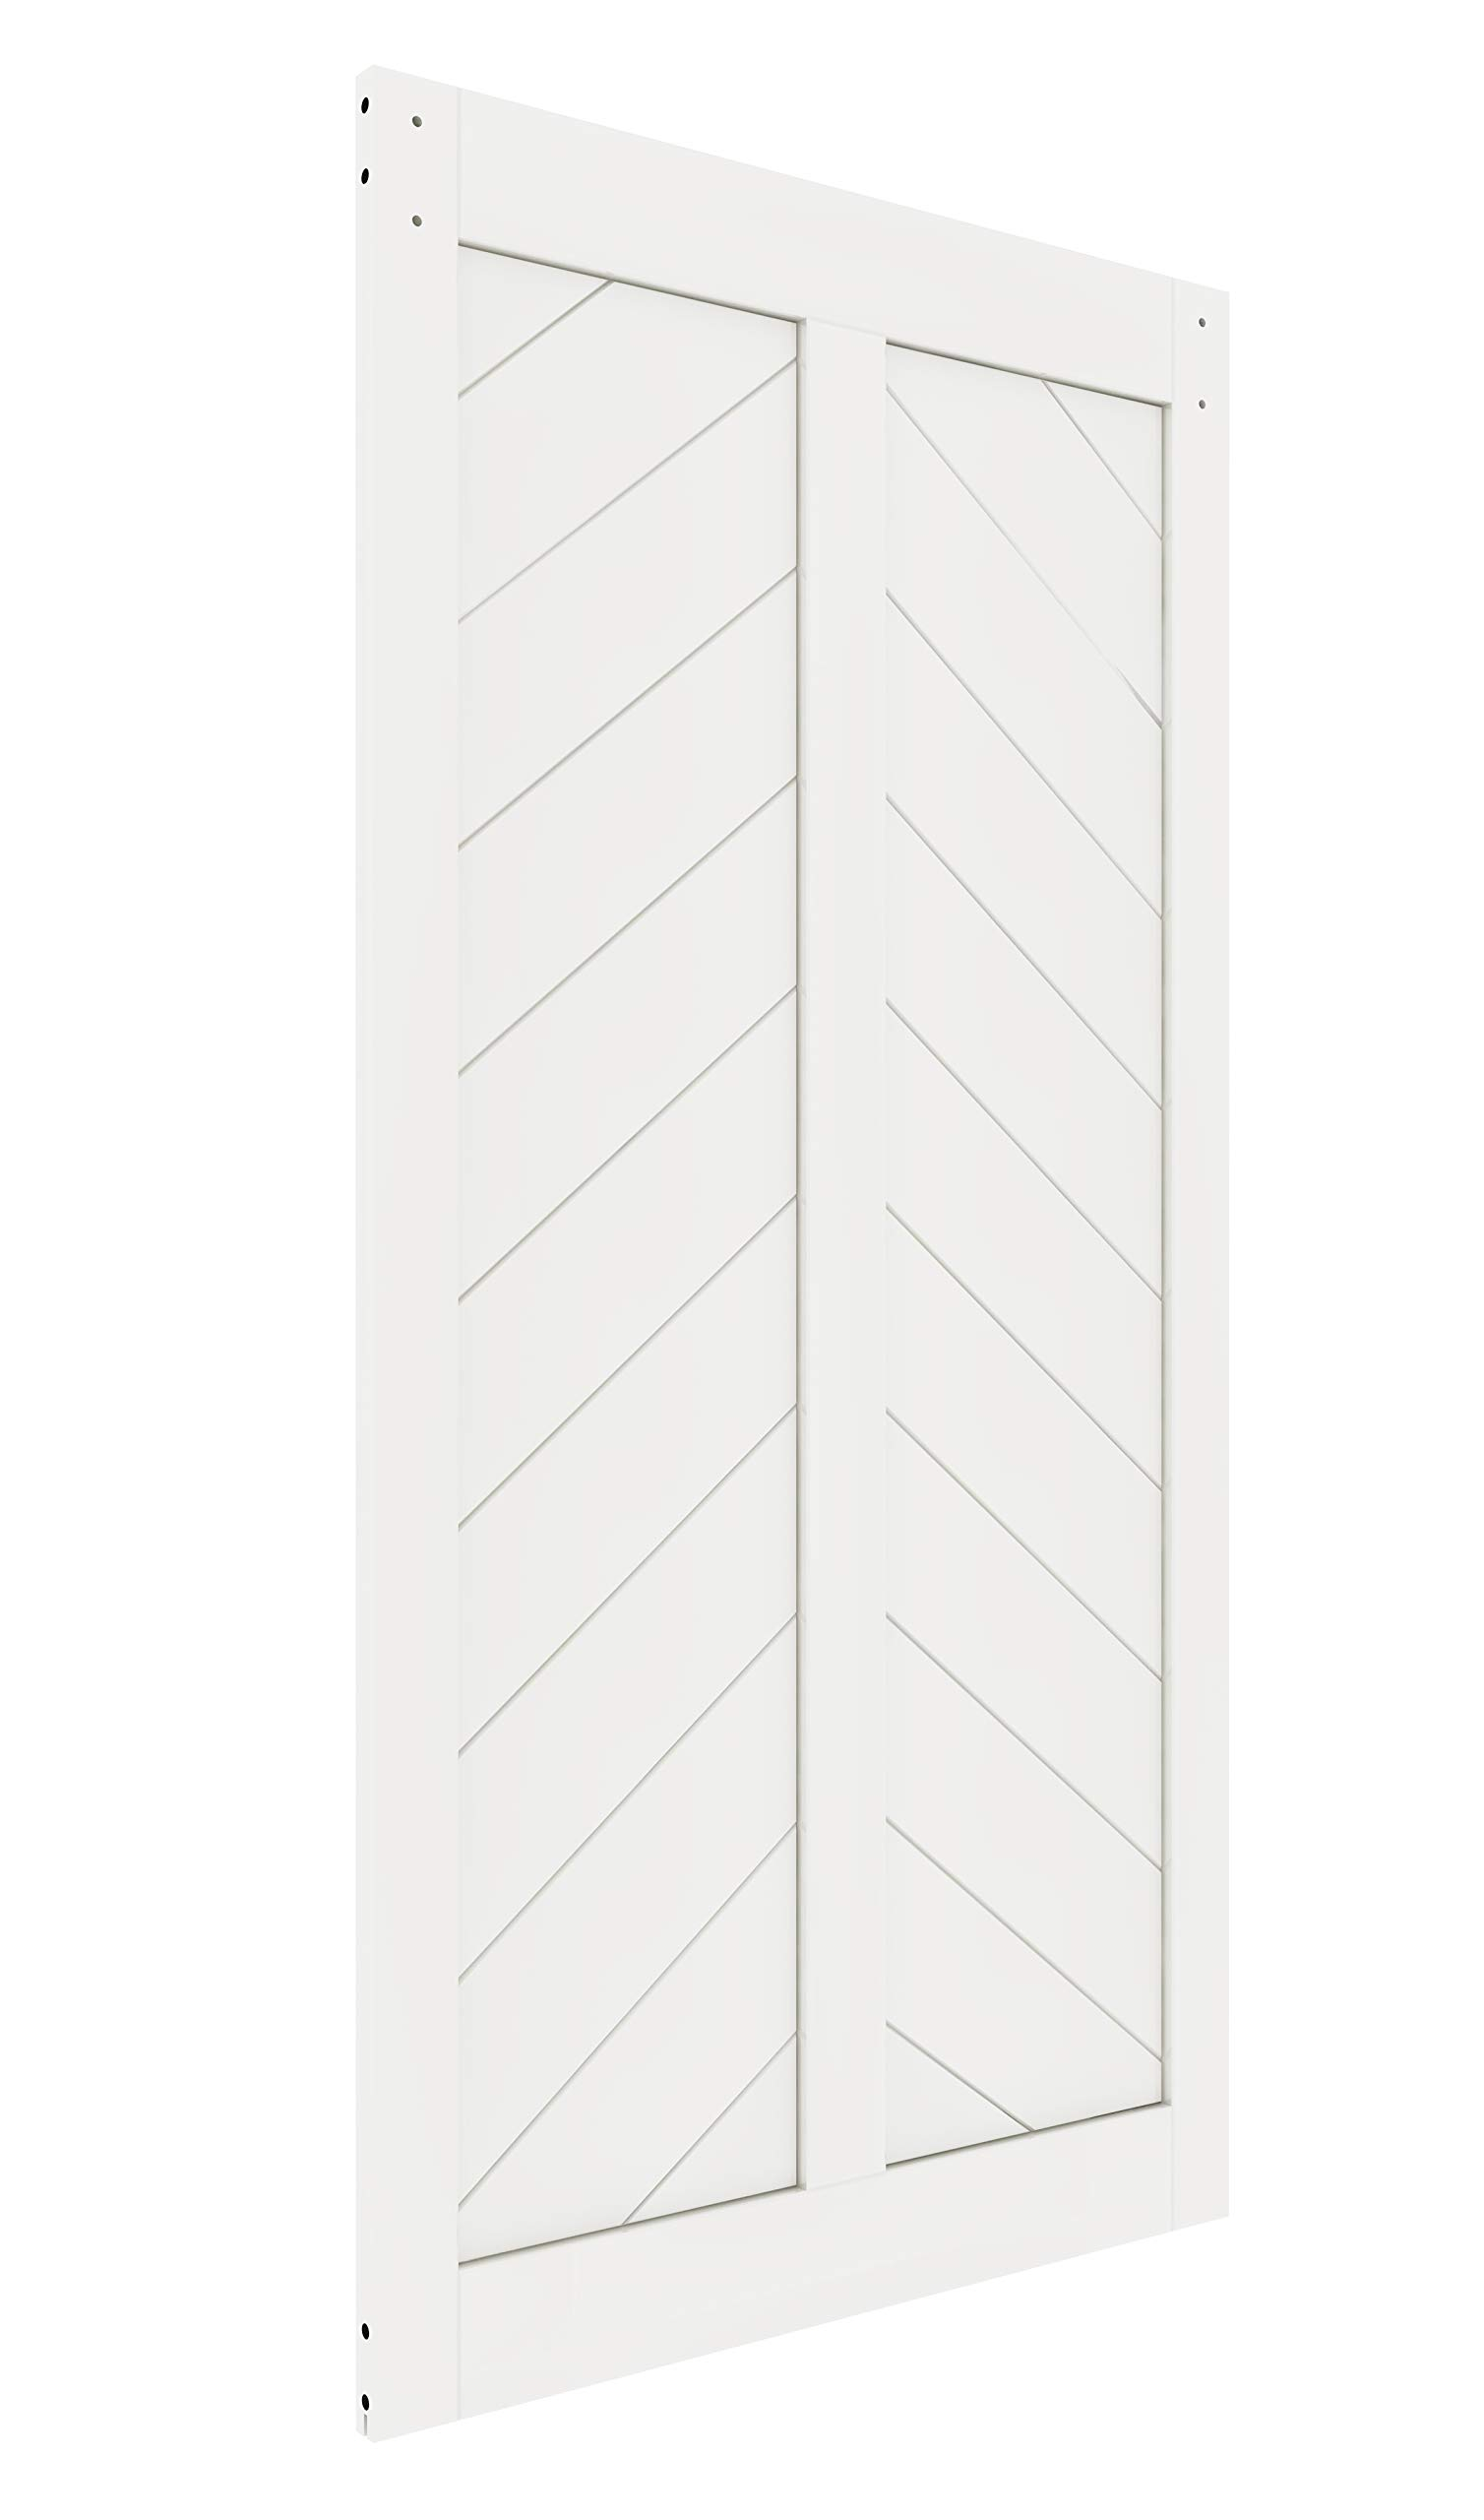 DIYHD 42X84in Fish Bone V Shape Sliding Barn Slab MDF Solid Core Primed Interior Door Panel(Disassembled), White-42X84'' White by DIYHD (Image #2)